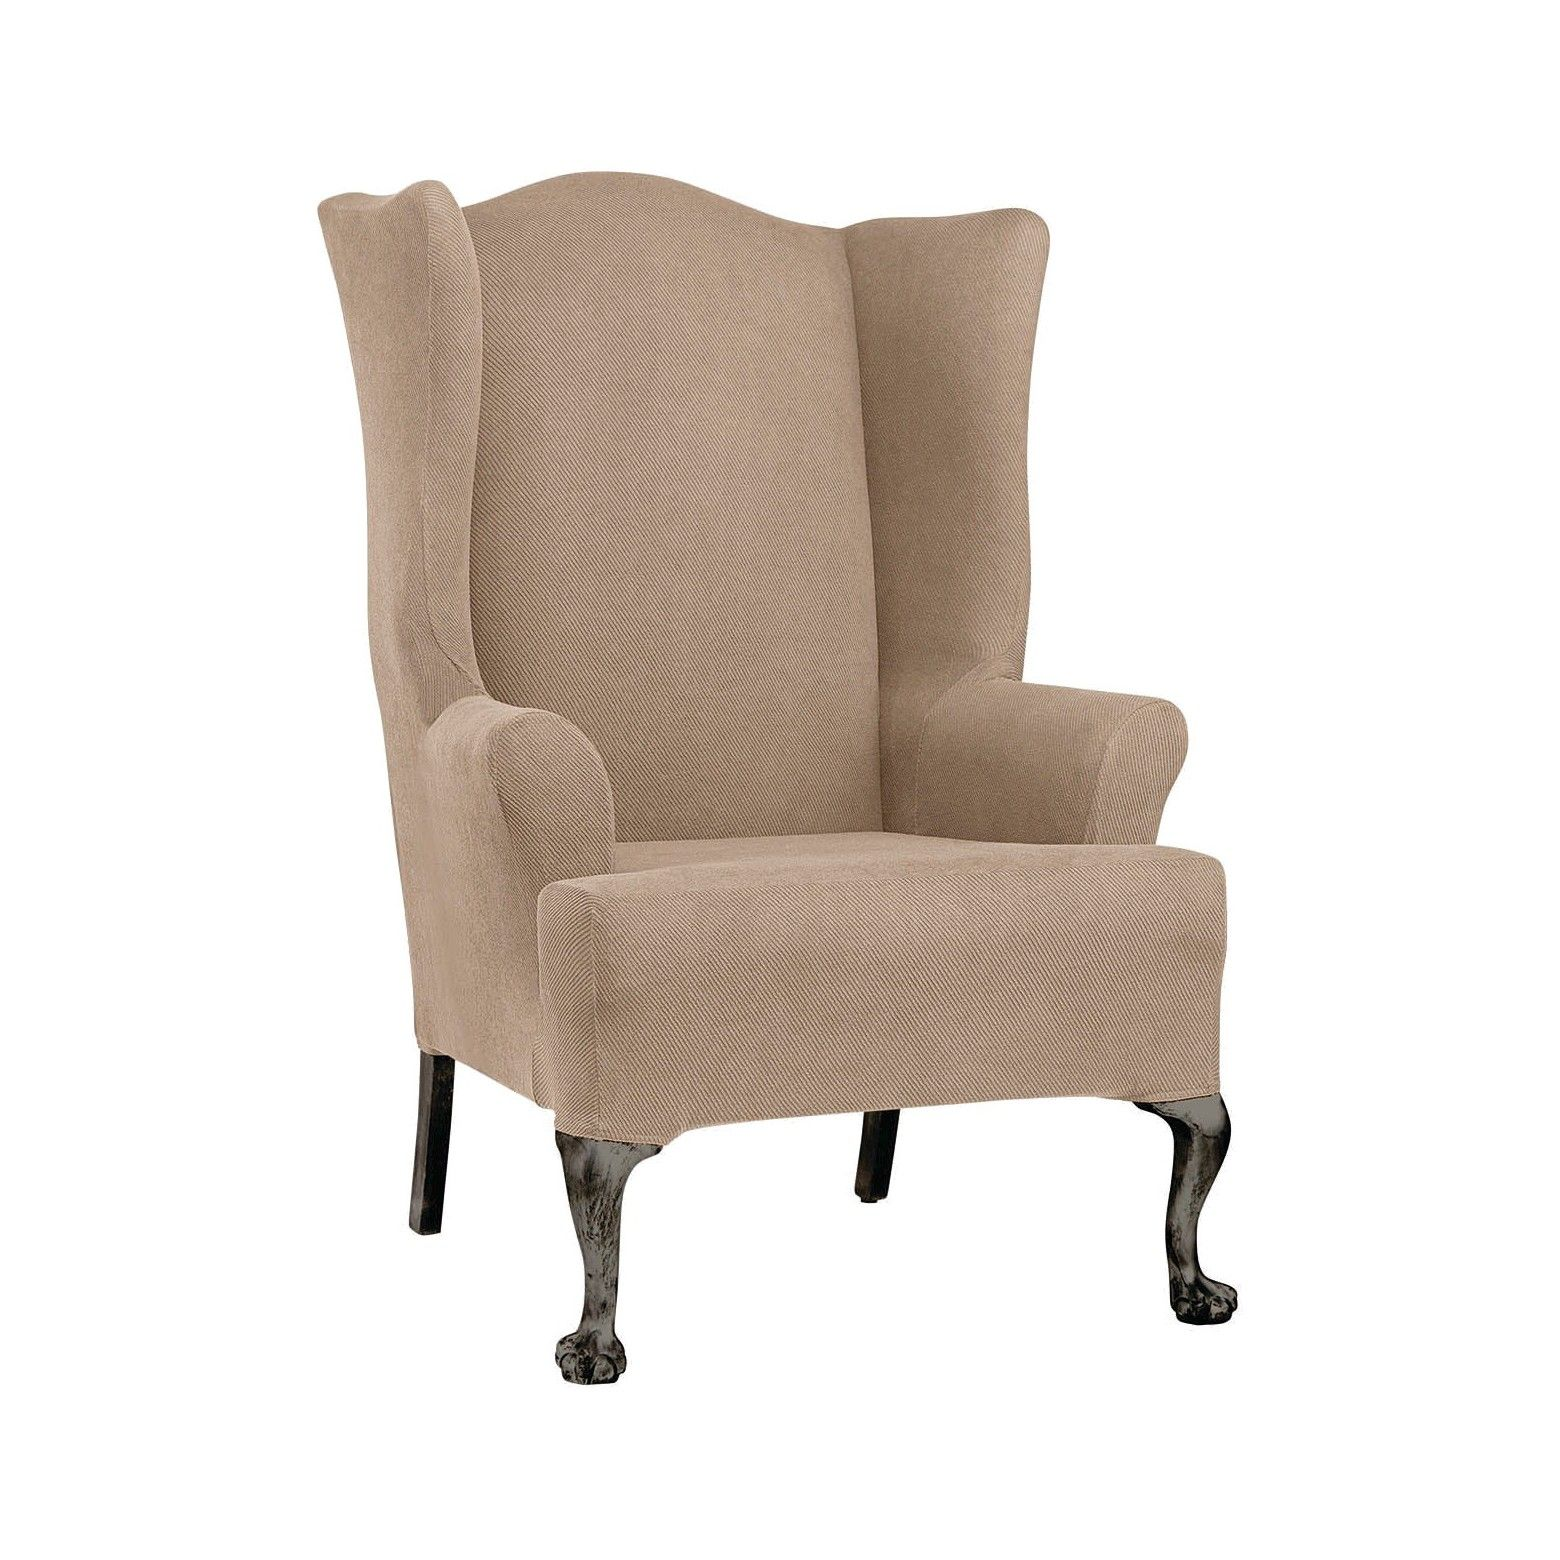 Update Your Living Space With The Sure Fit Stretch Twill Wing Chair Slipcover Made Of 96 Polyester And 4 Spande Slipcovers For Chairs Wing Chair Slipcovers